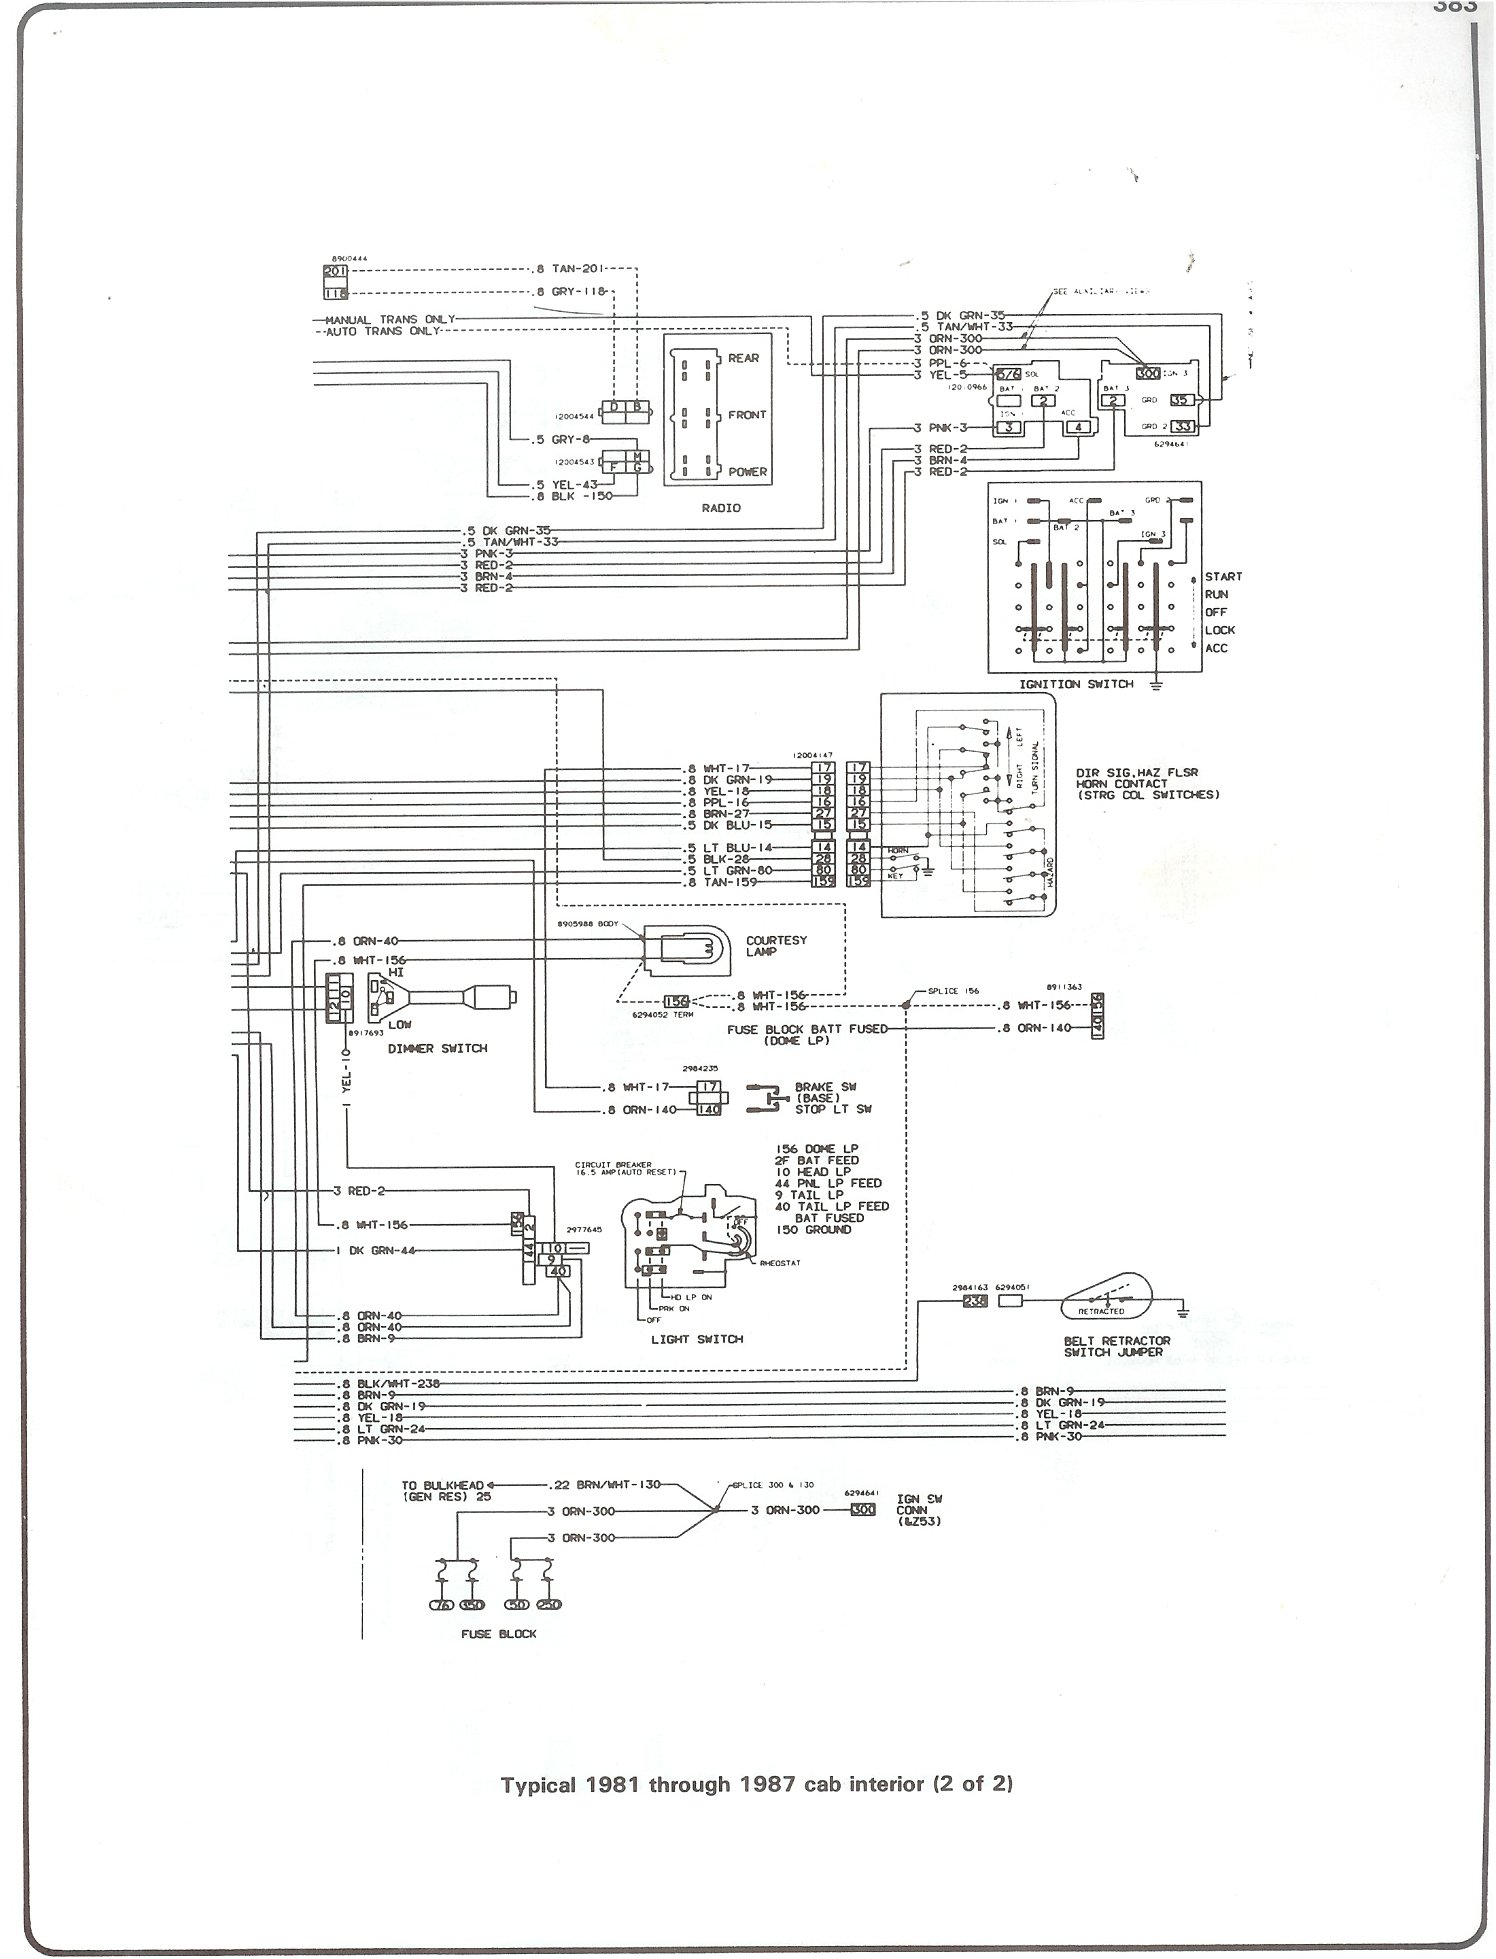 81 87_cab_inter_pg2 electrical diagrams chevy only page 2 truck forum  at bakdesigns.co